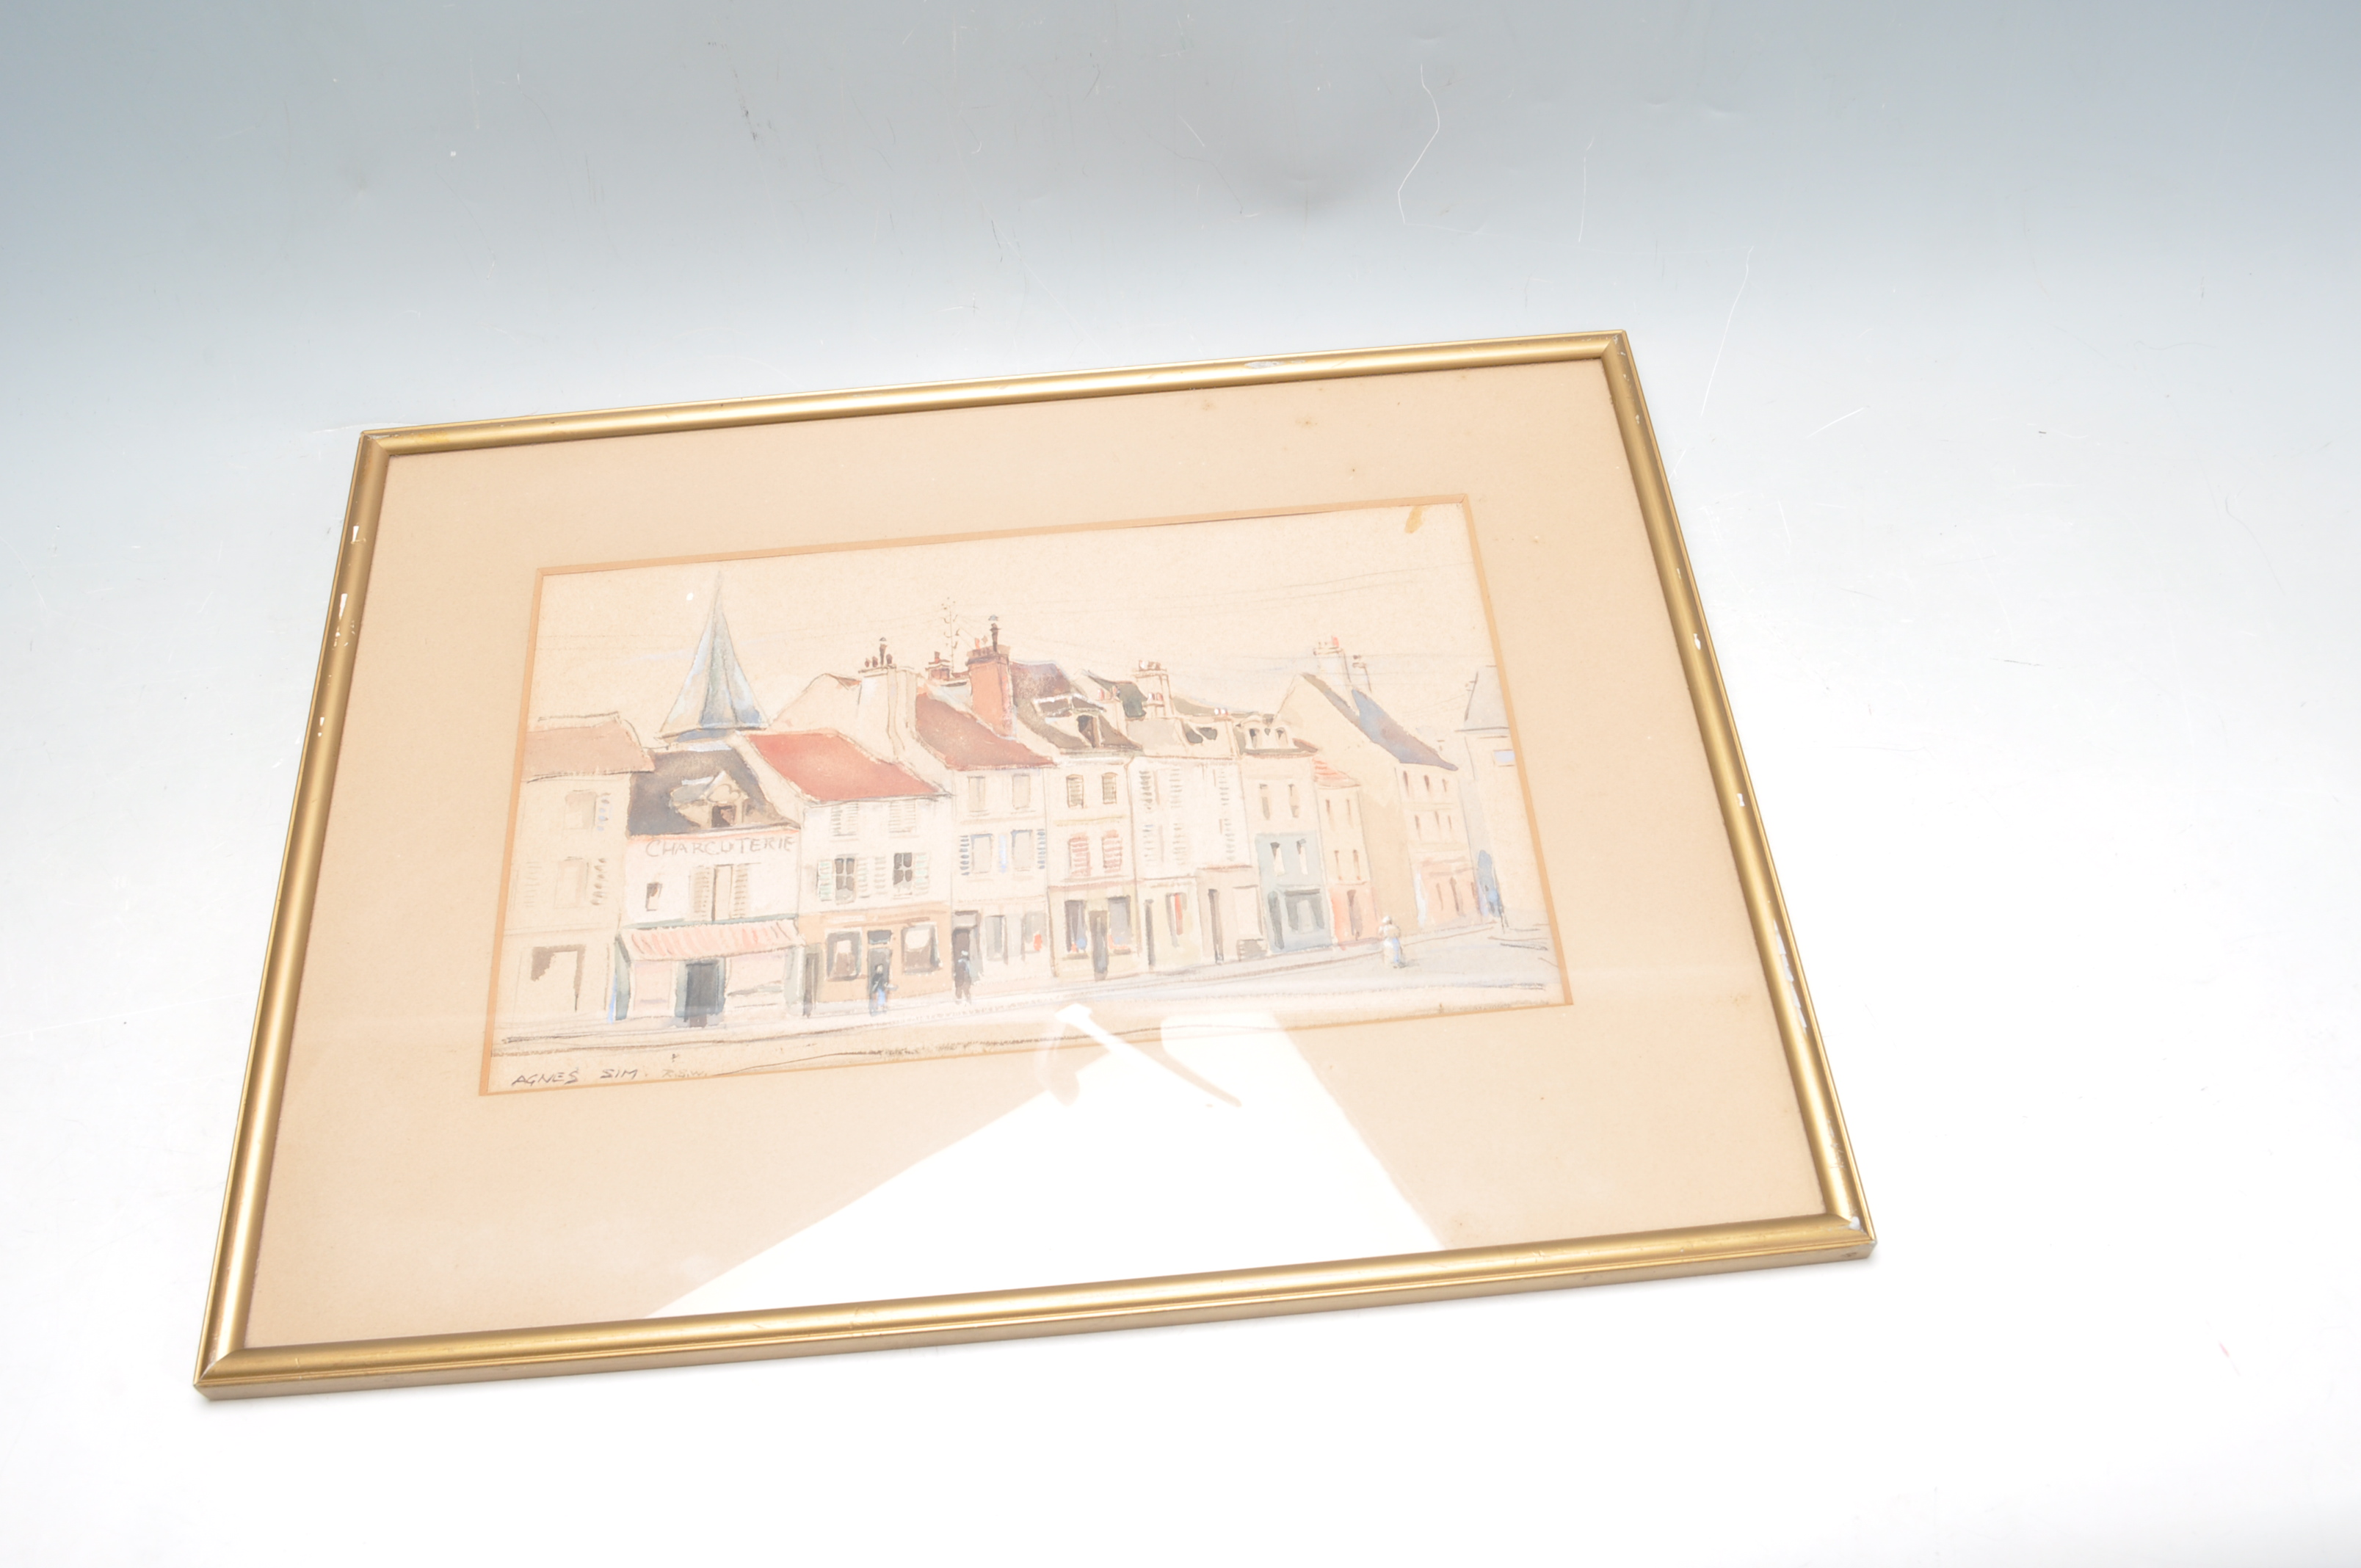 AGNES SIM (1887 - 1978) A 20TH CENTURY WATERCOLOUR DEPICTING A FRENCH STREET SCENE. - Image 4 of 6